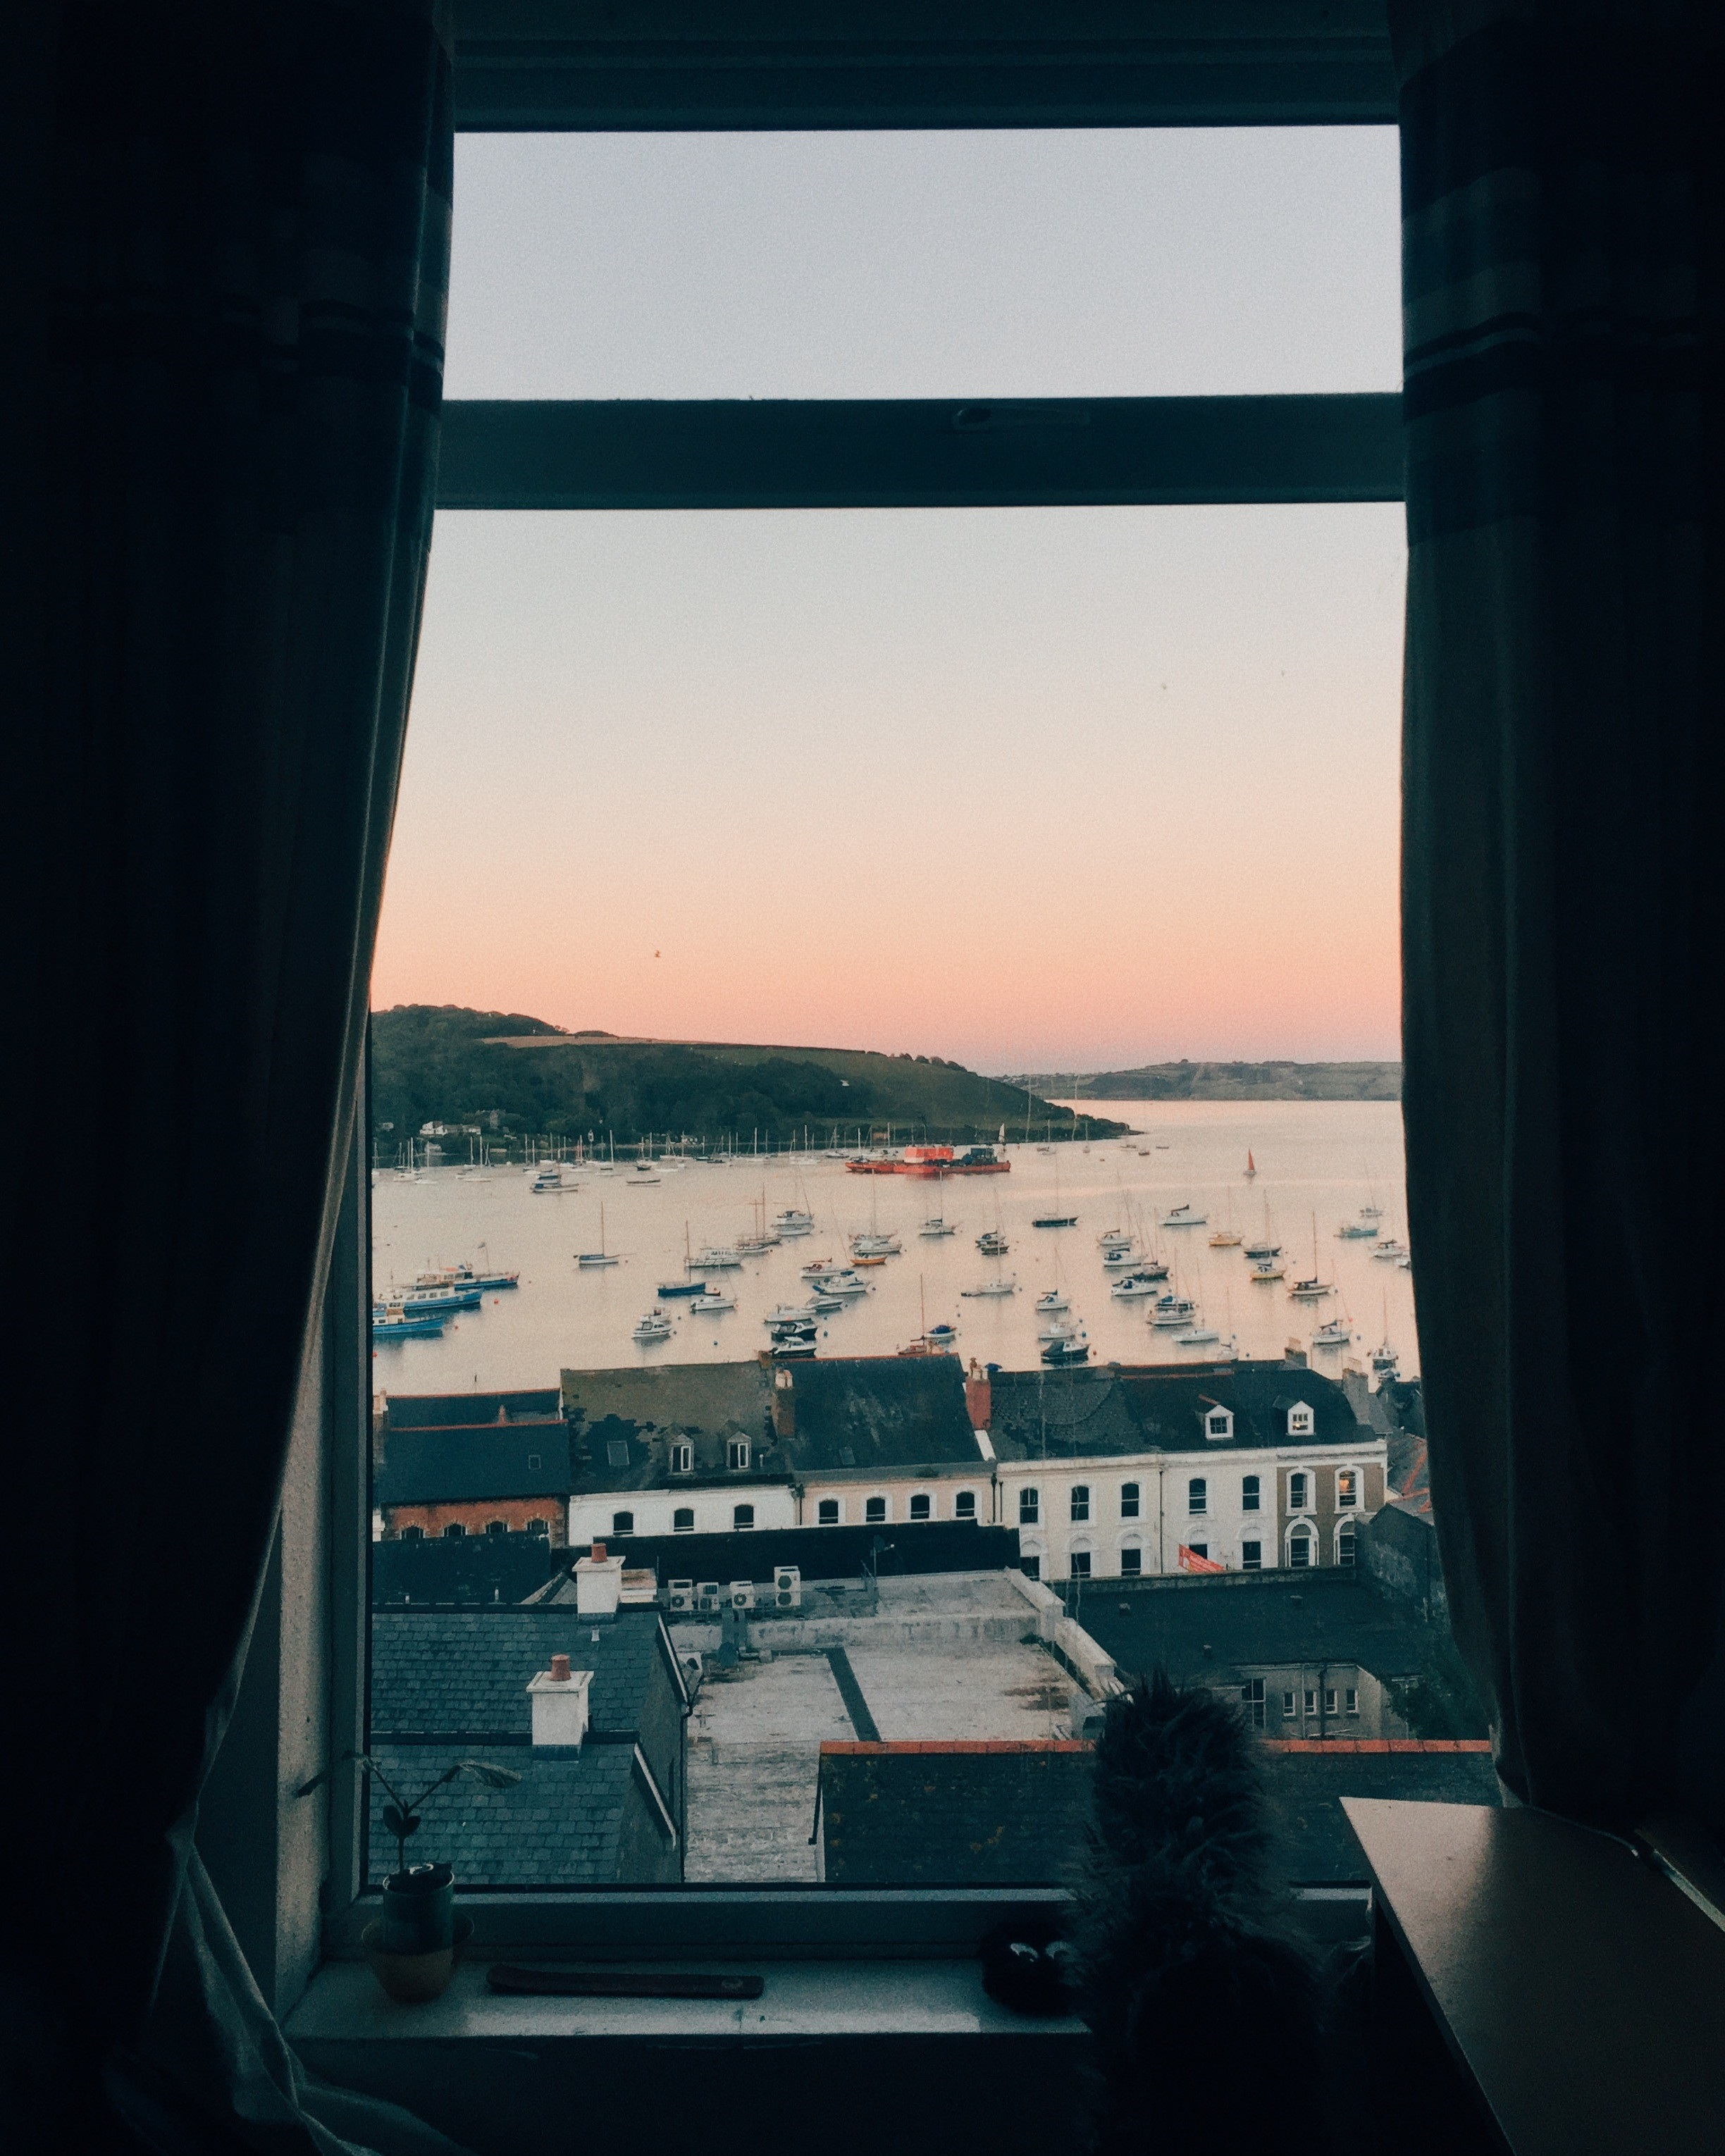 The view from Alfred's window in Falmouth inspired a series of poems, two of which he shared with us.